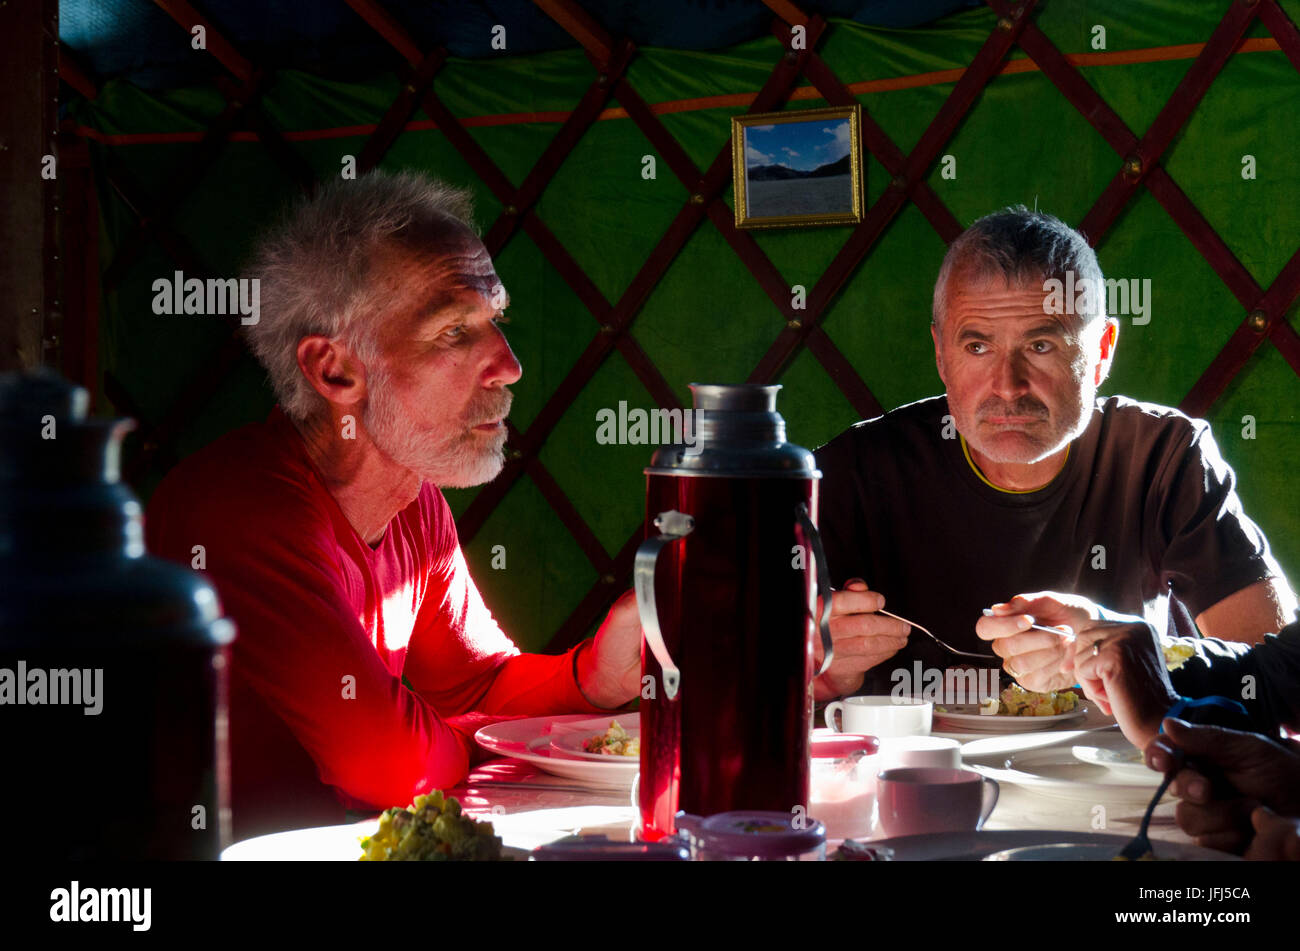 Mongolia, Central Asia, yurt camp at Tsenkher, two men having dinner in a yurt - Stock Image